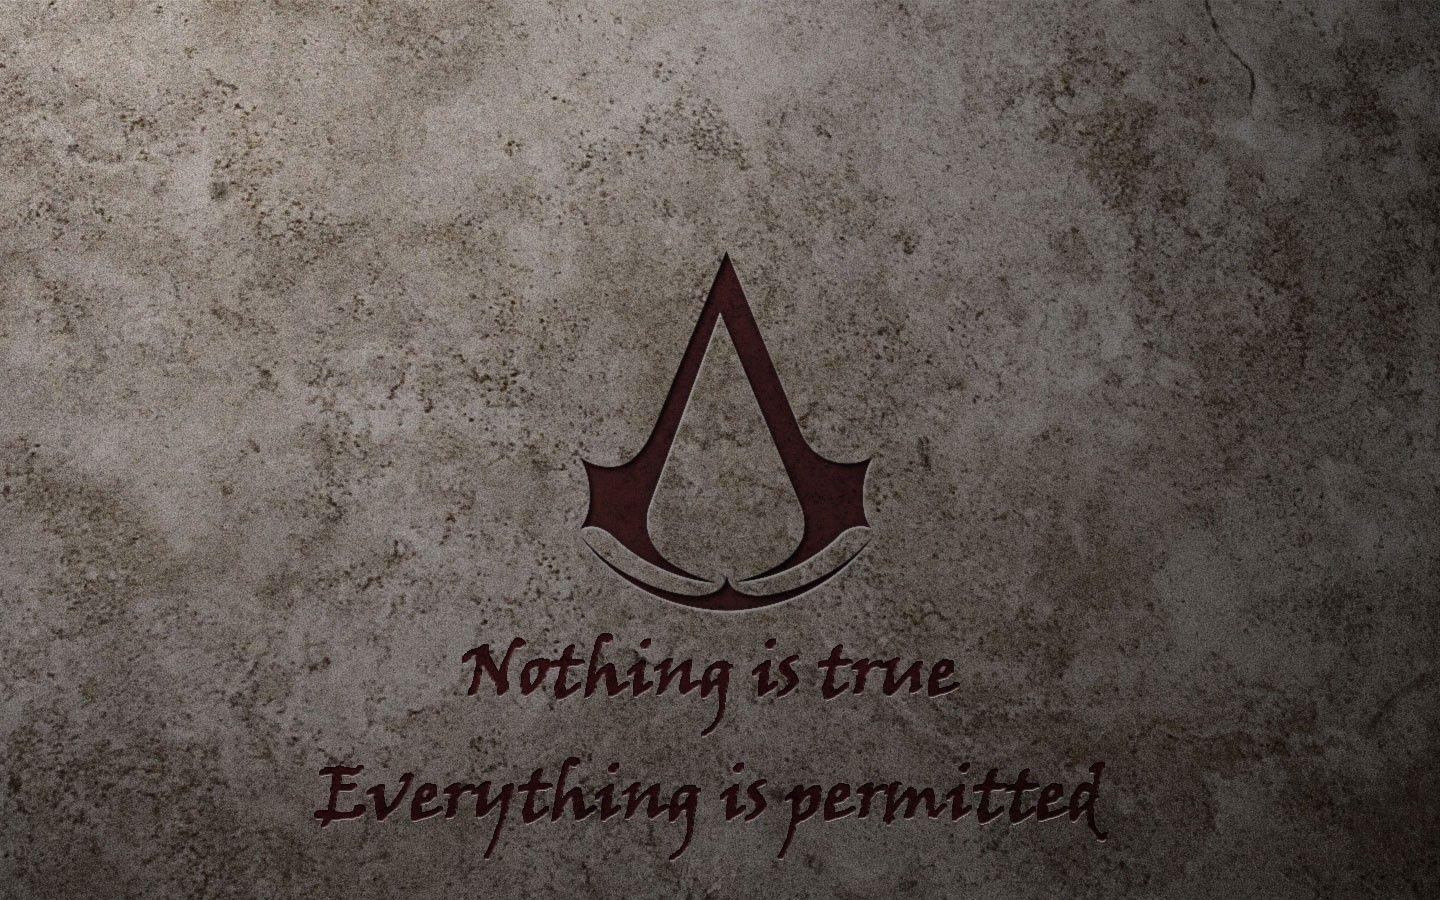 Assassins Creed quotes logos wallpapers